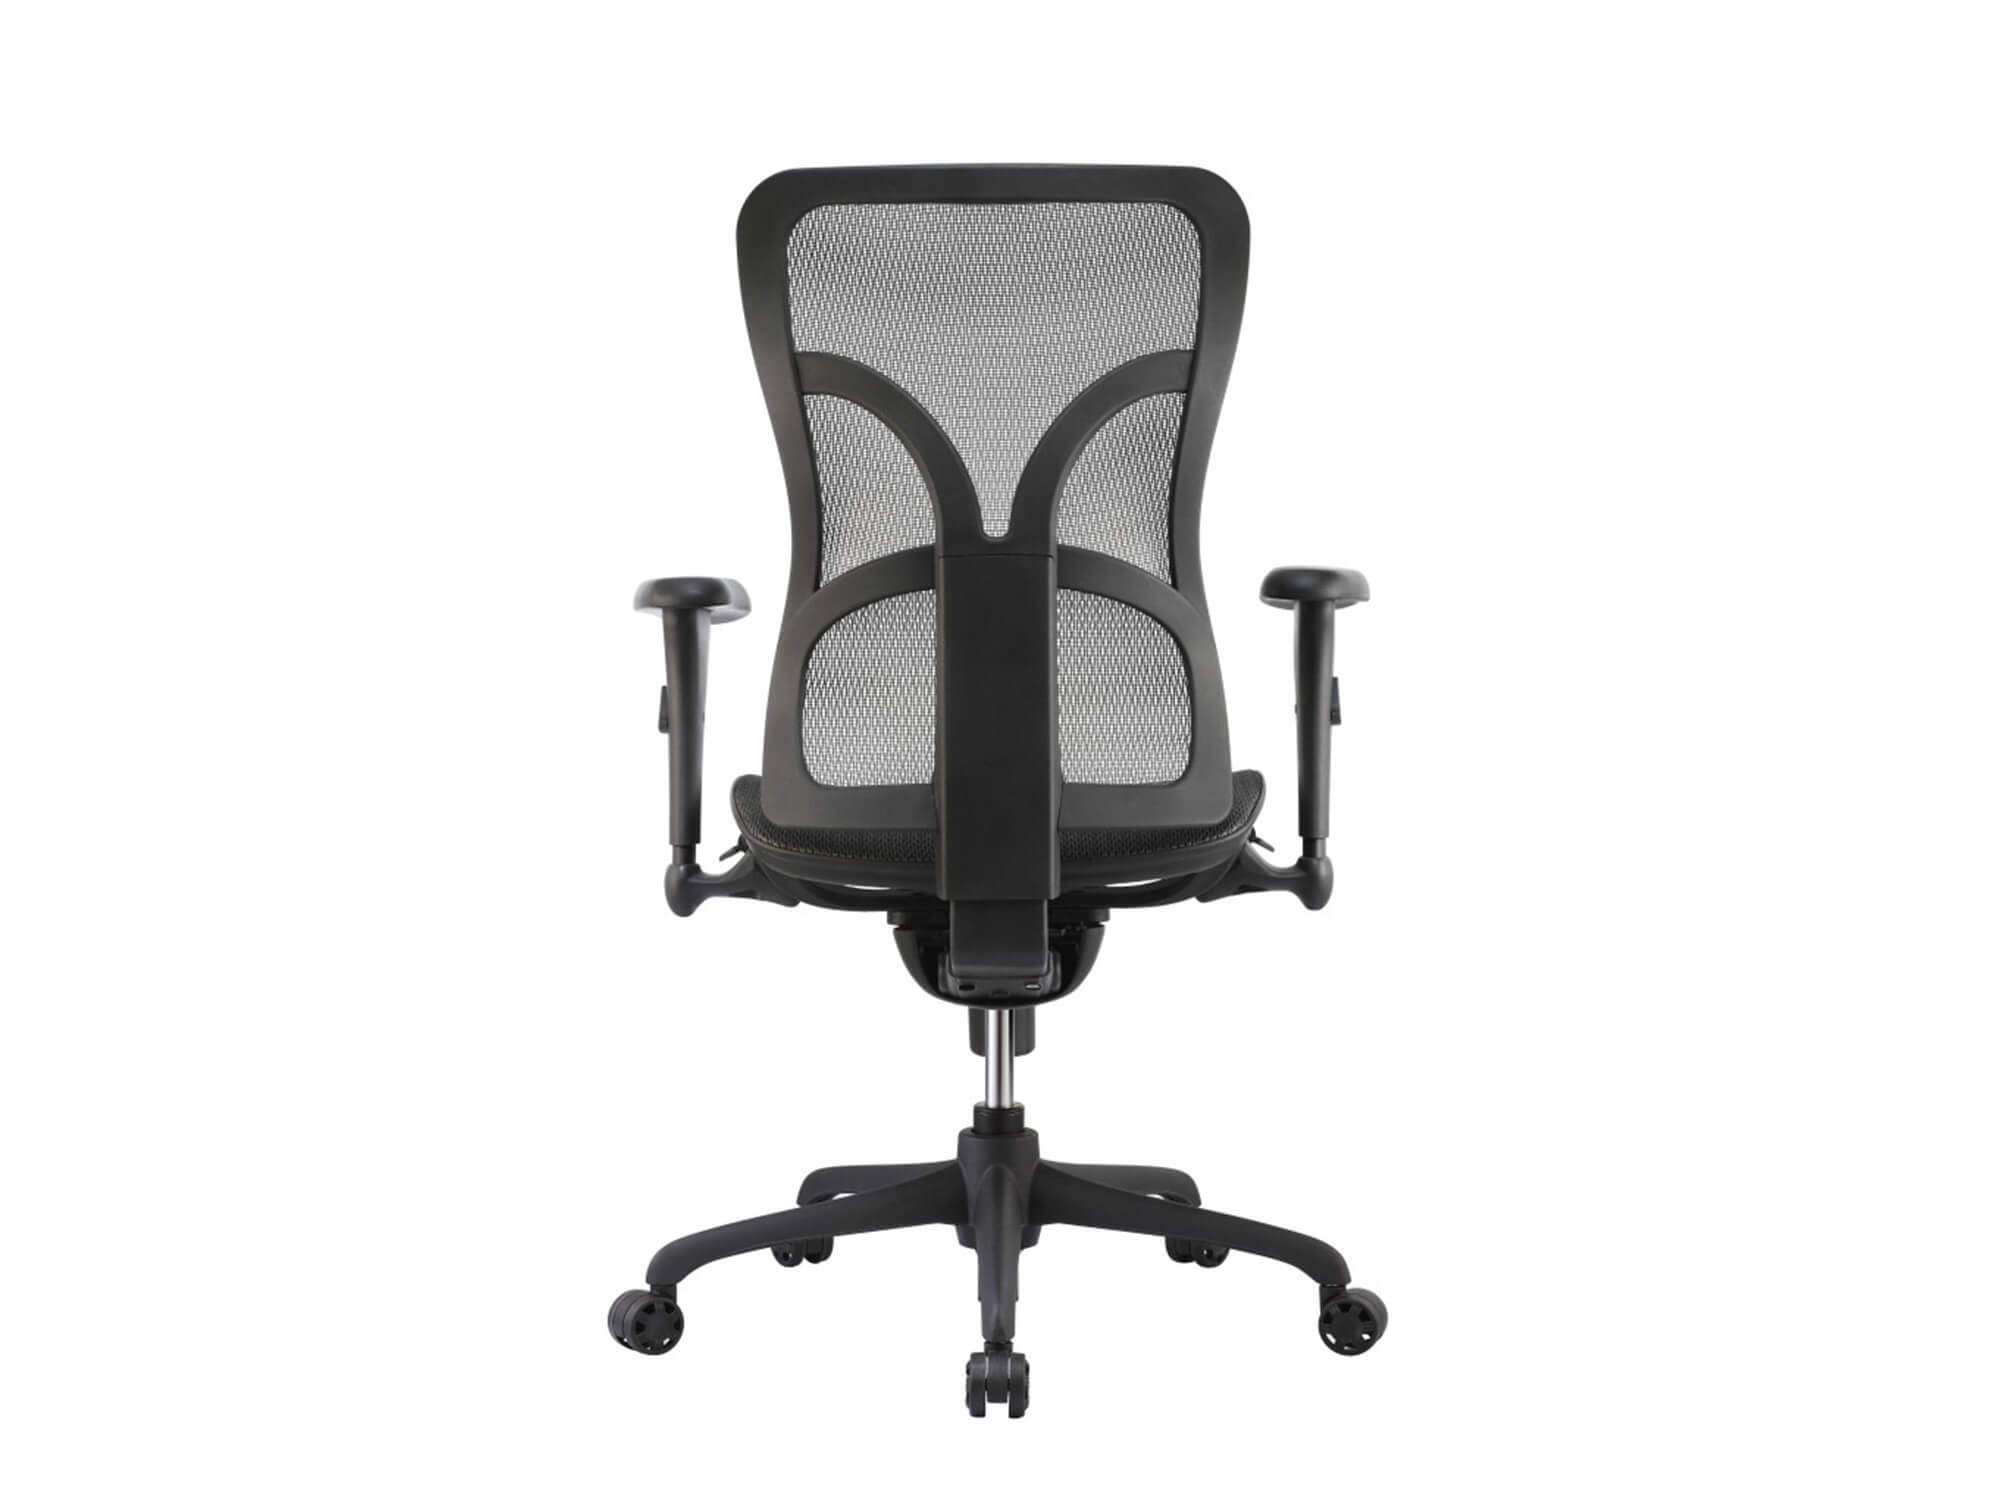 Adjustable office chair back